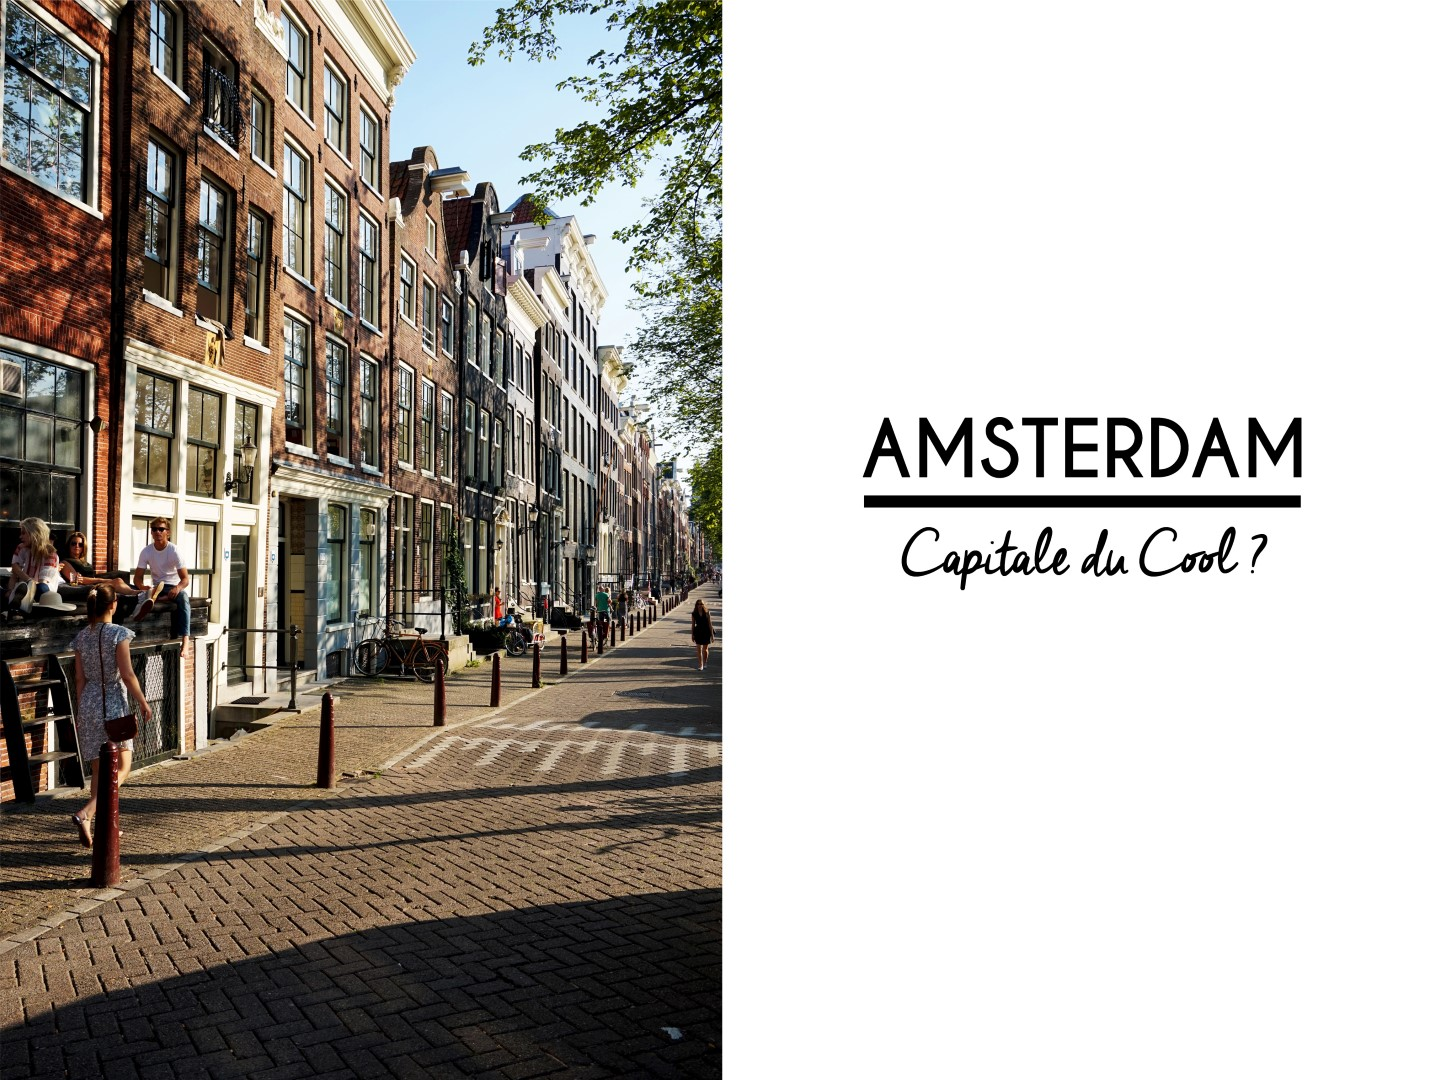 20160127_amsterdam_capitale_cool (Large)